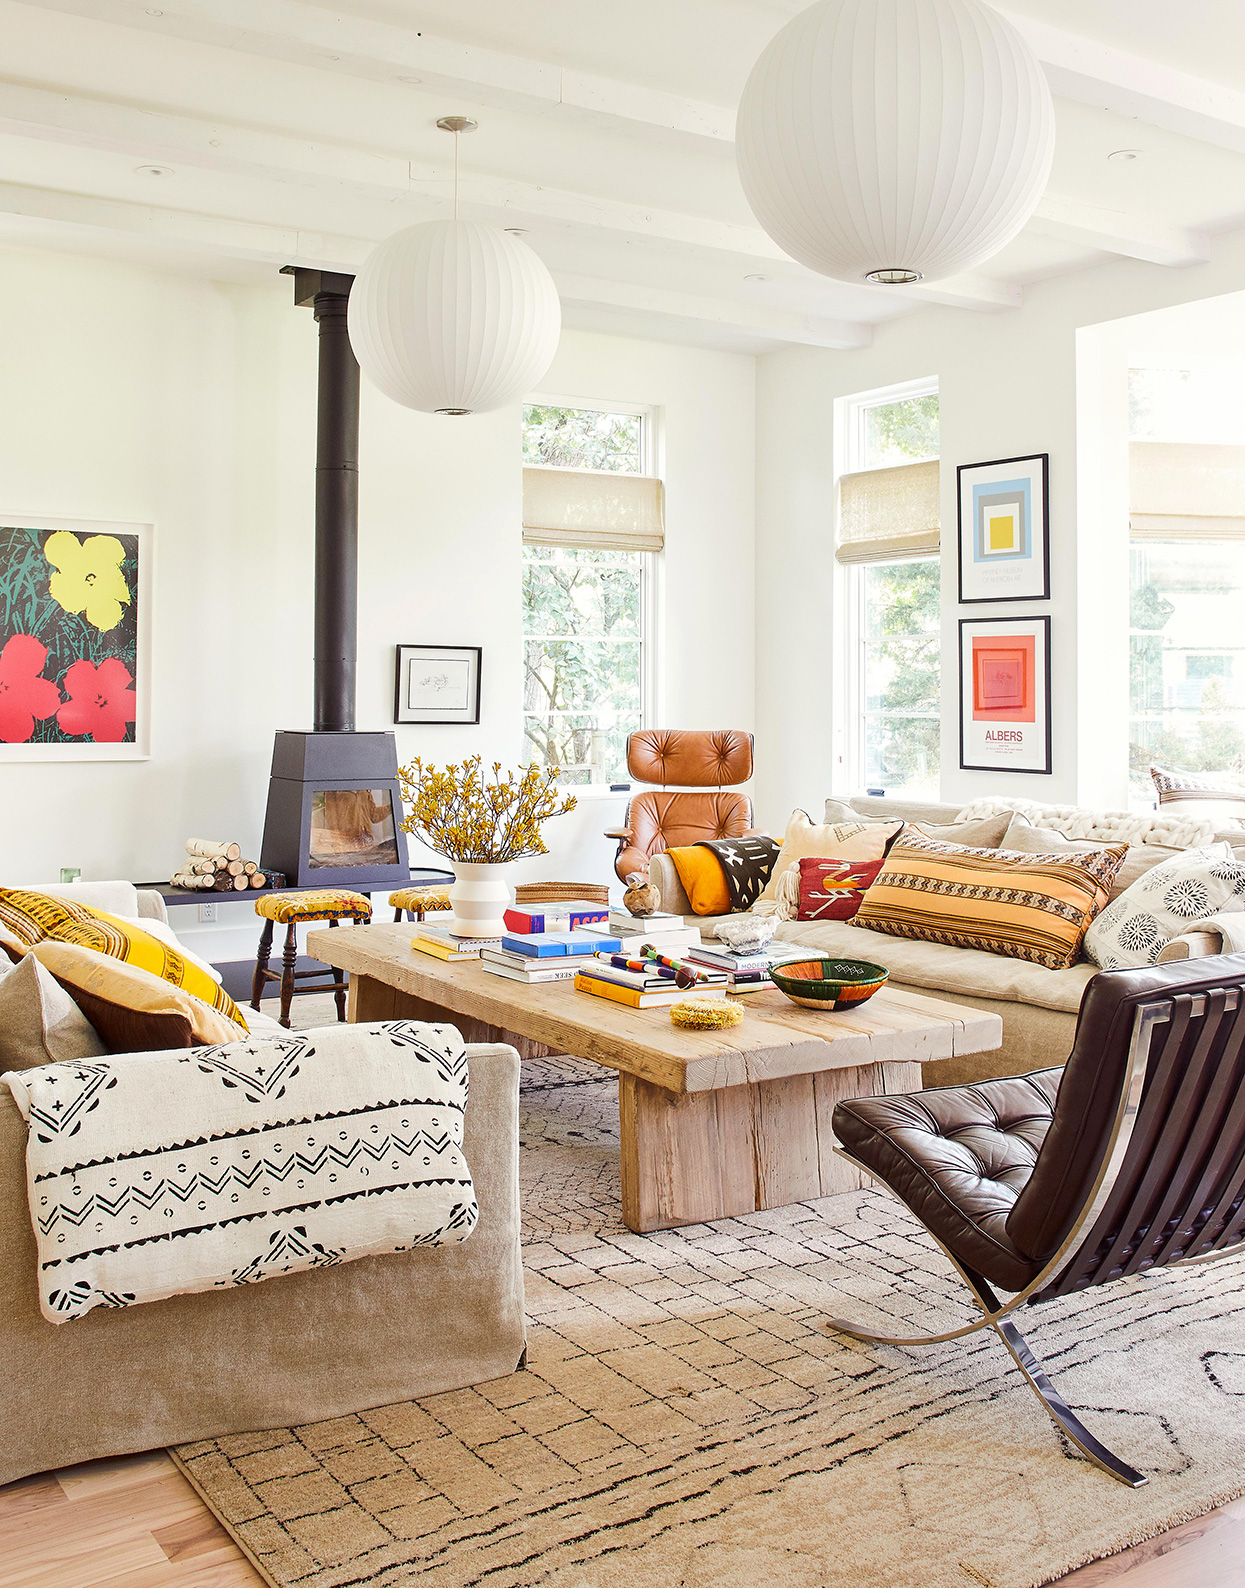 neutral colors in living room with moroccan fabrics and pop art